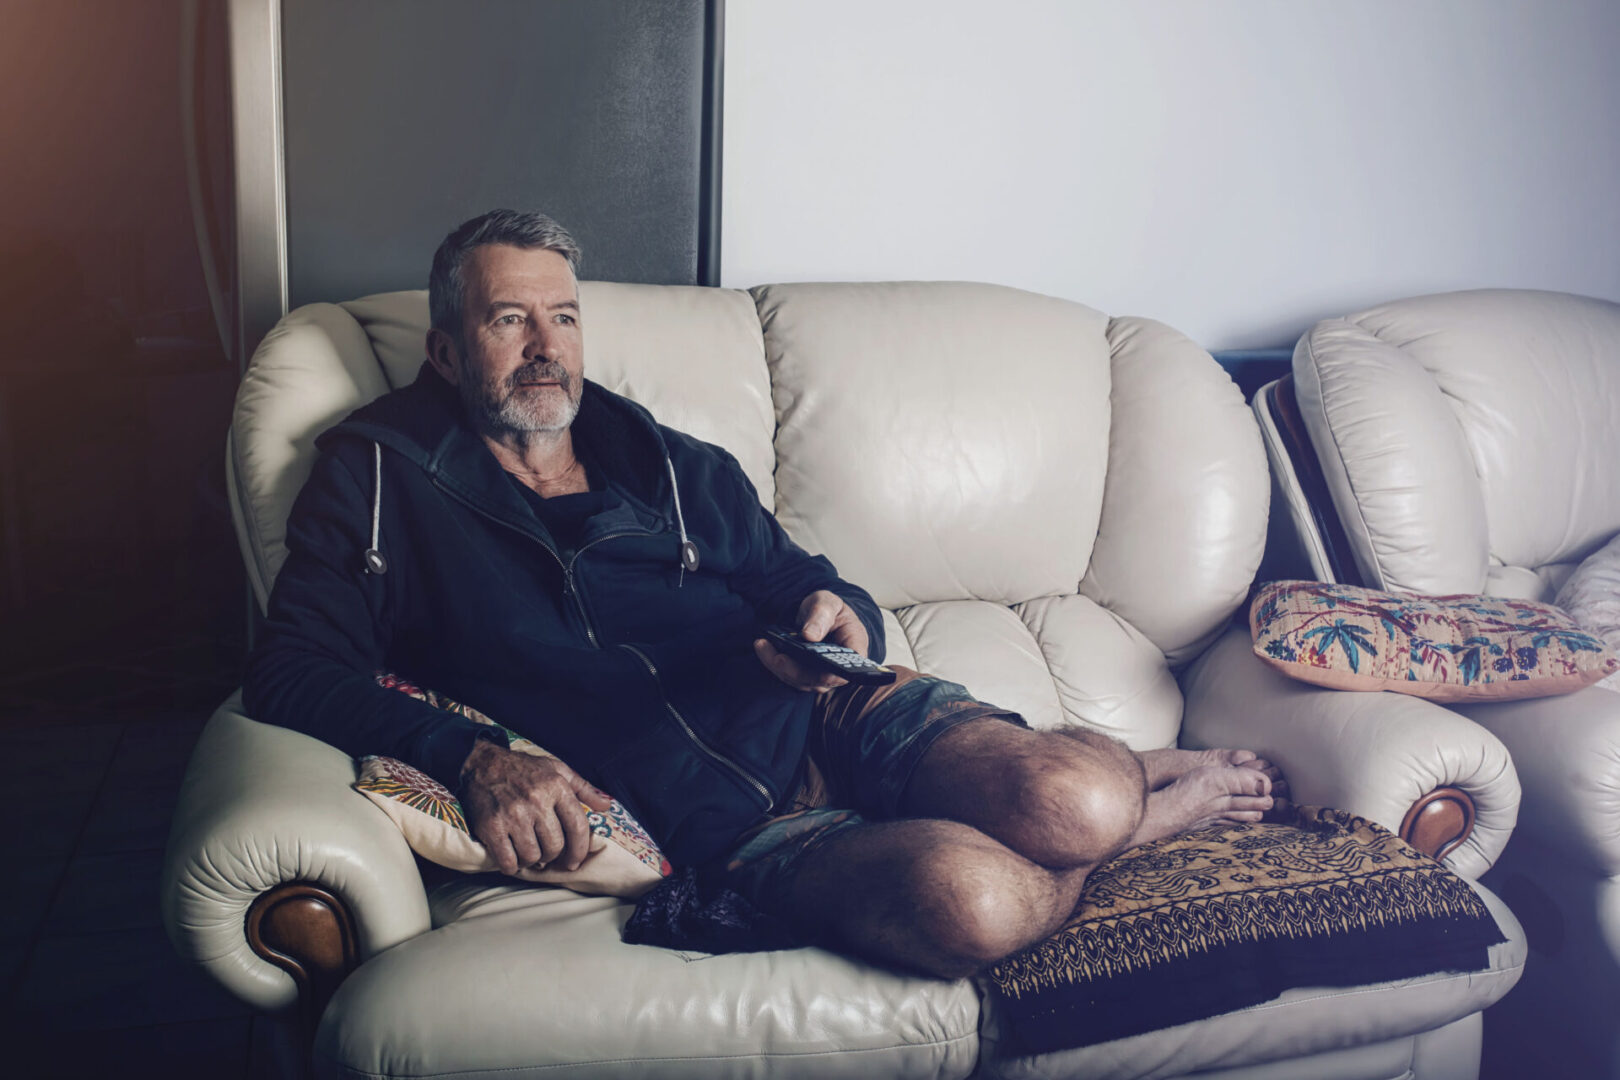 Man sitting on couch in a bathrobe watching TV